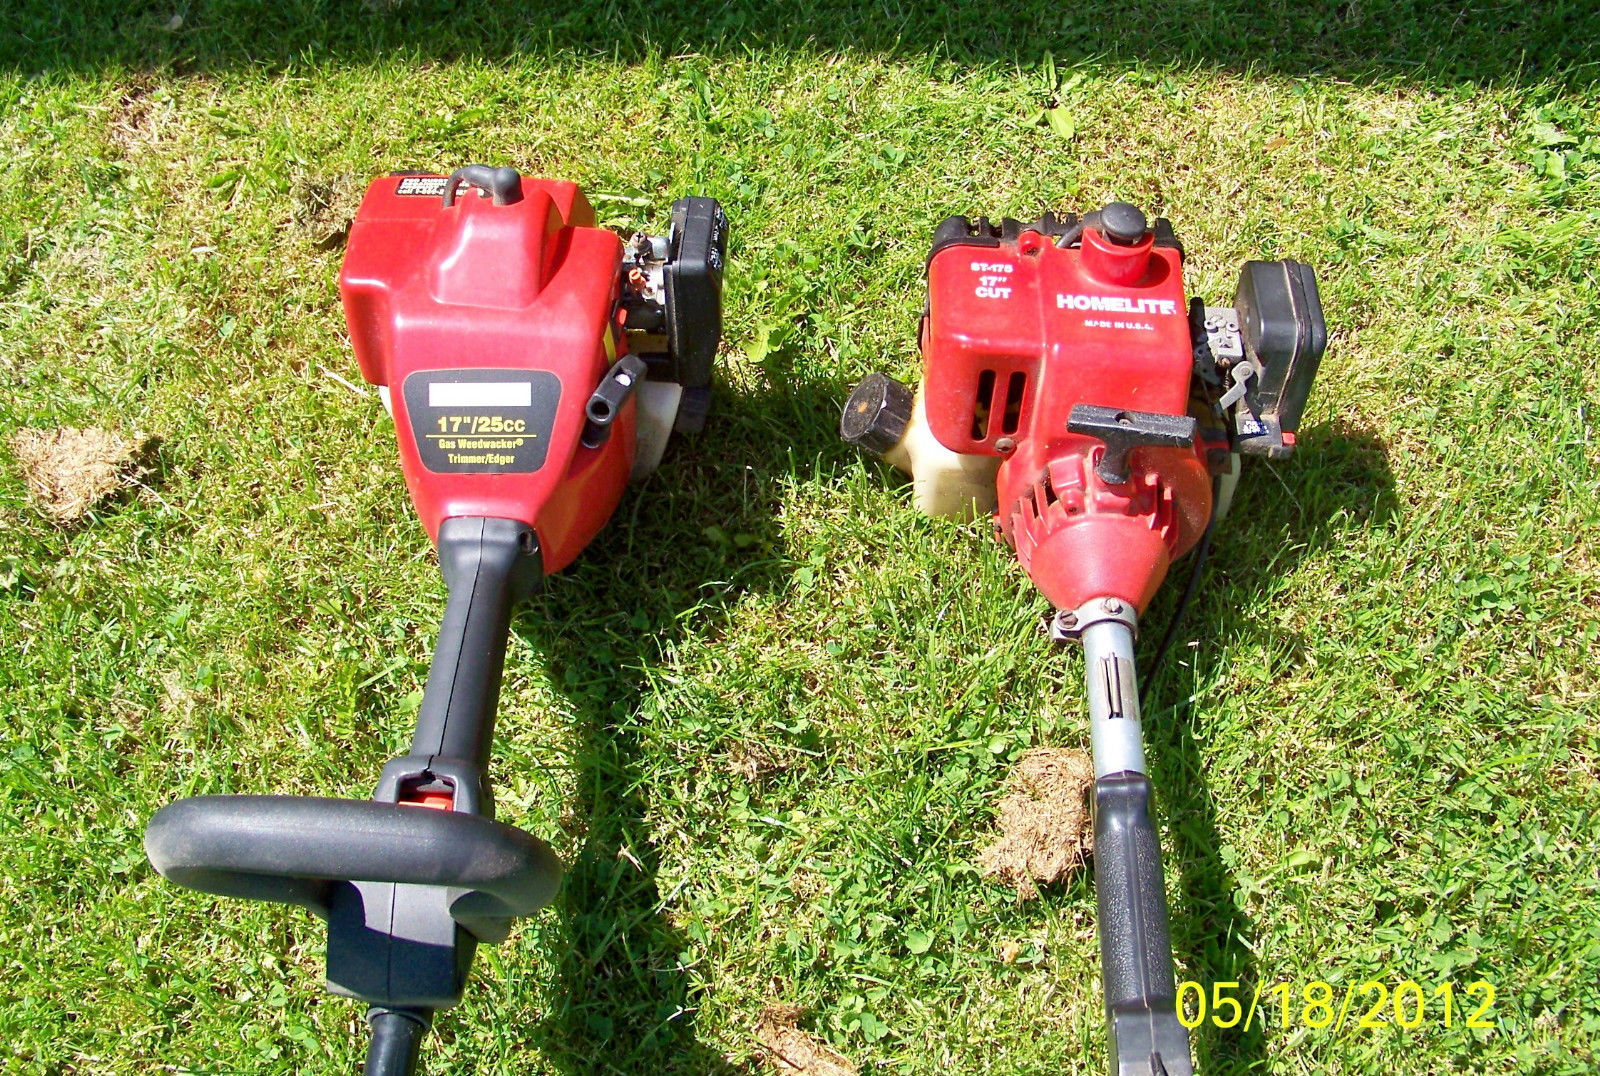 TWO USED GAS WEED TRIMMERS------PICK UP ONLY------